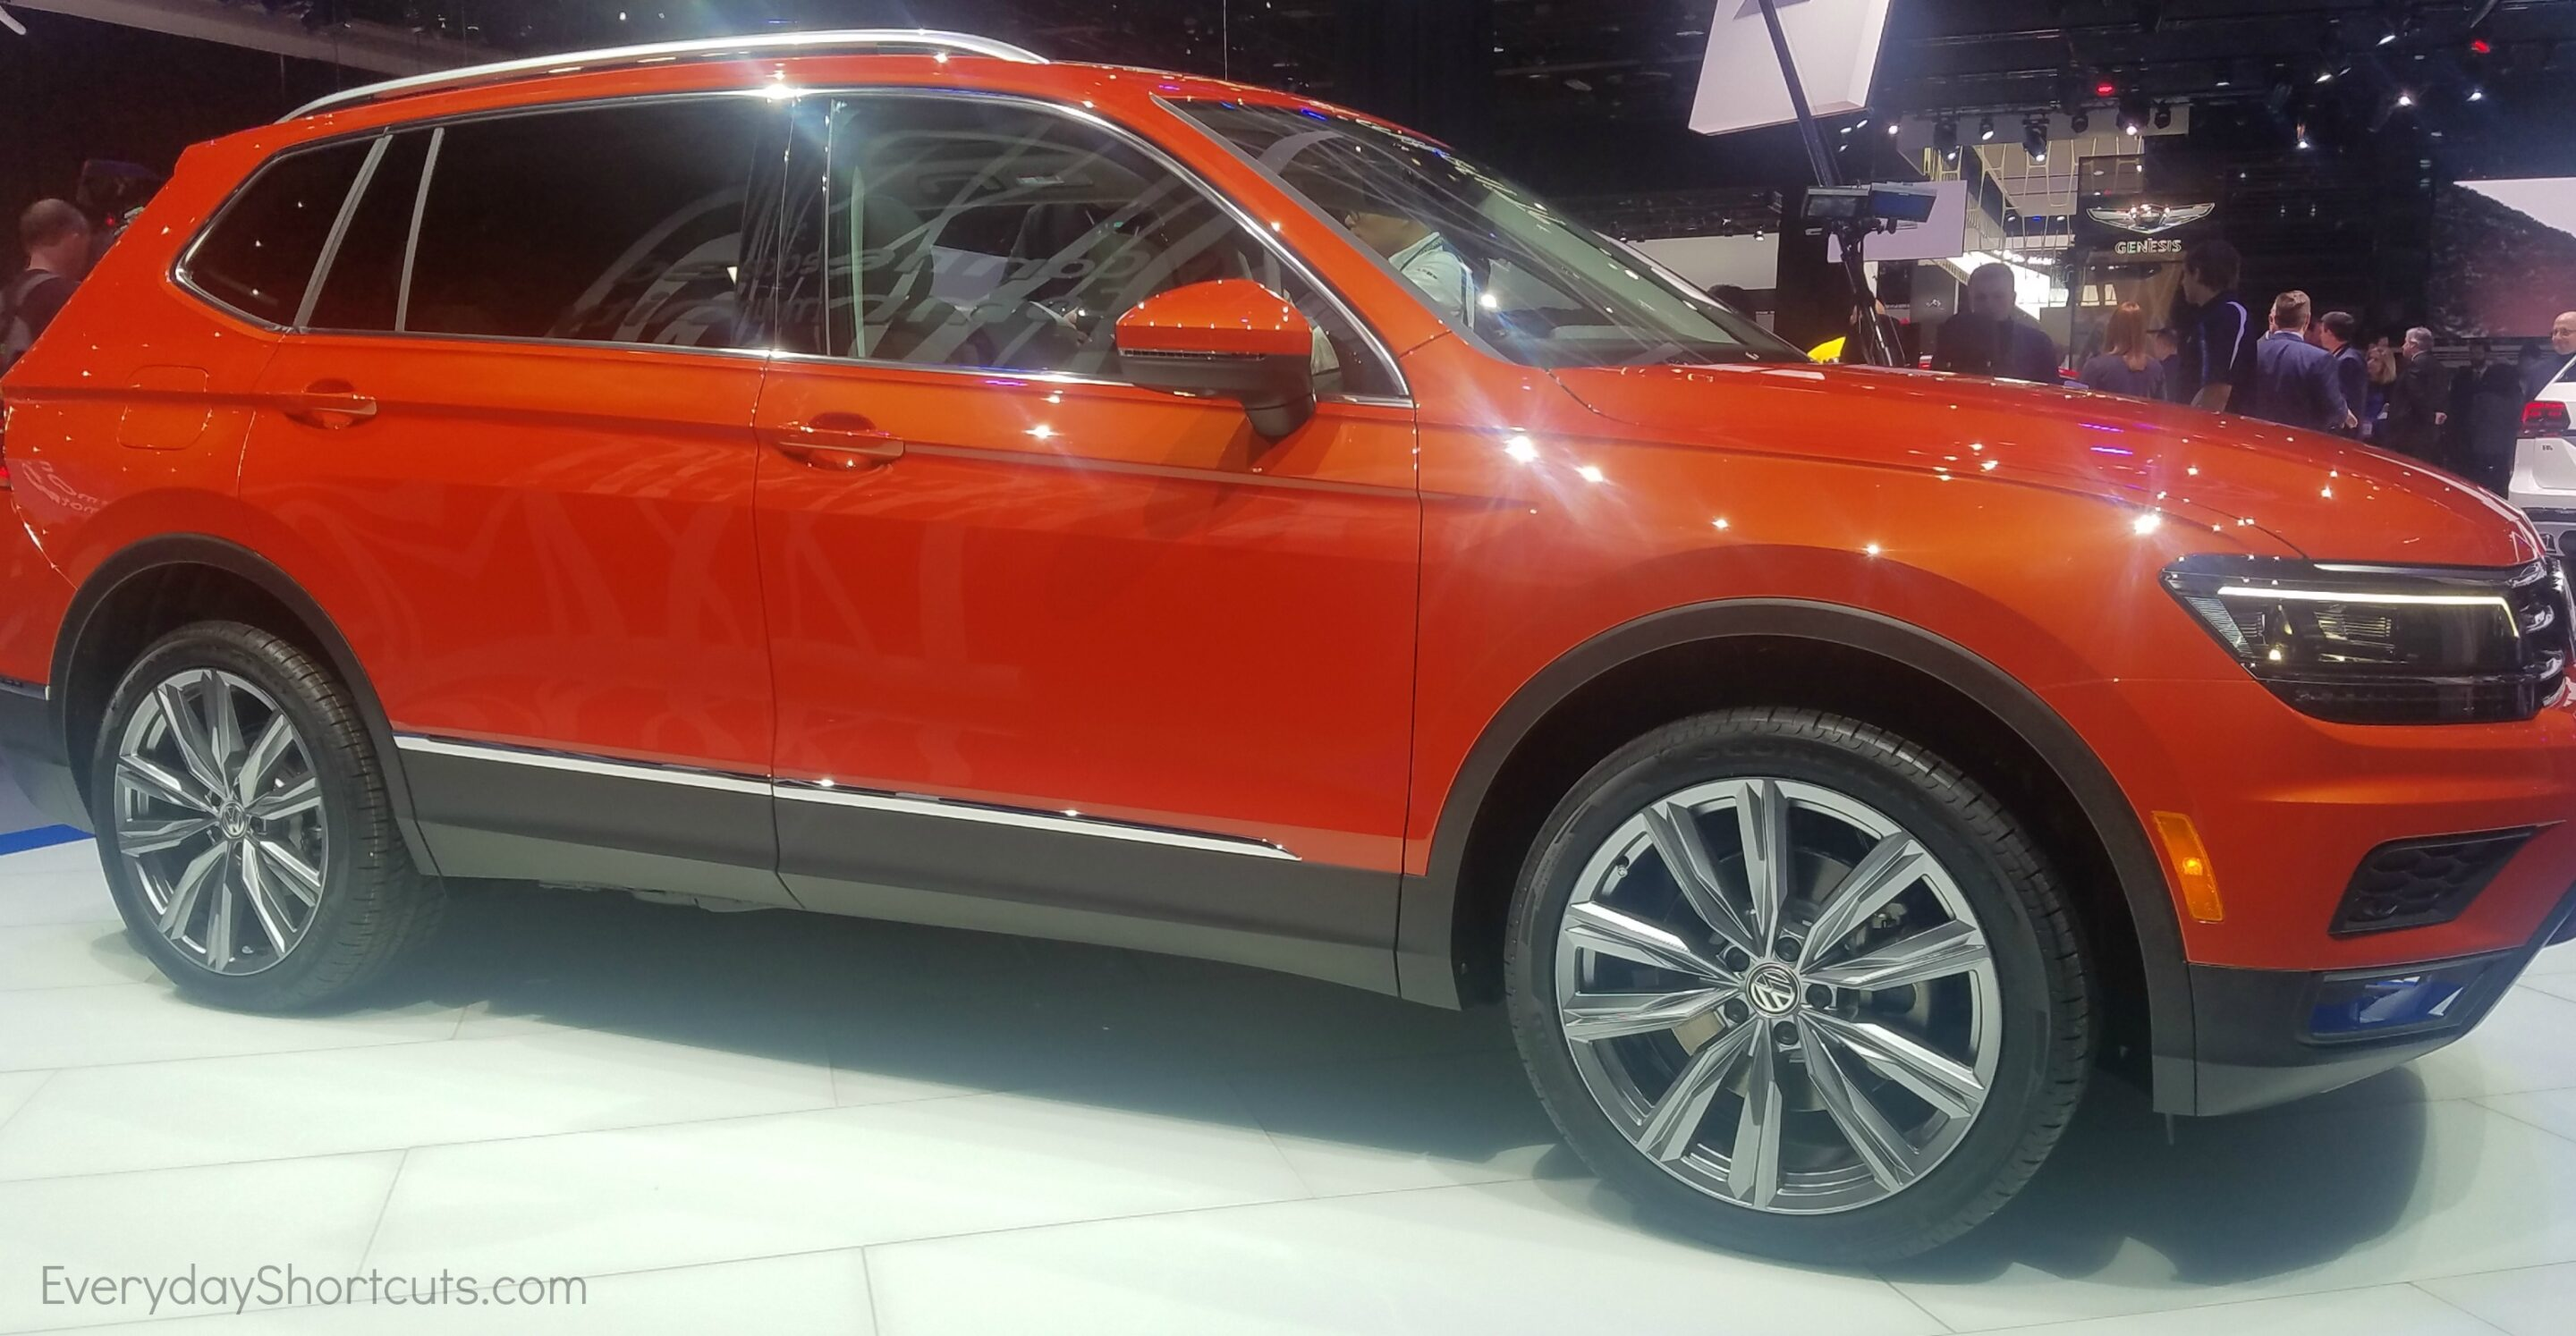 sideview of volkswagon tiguan